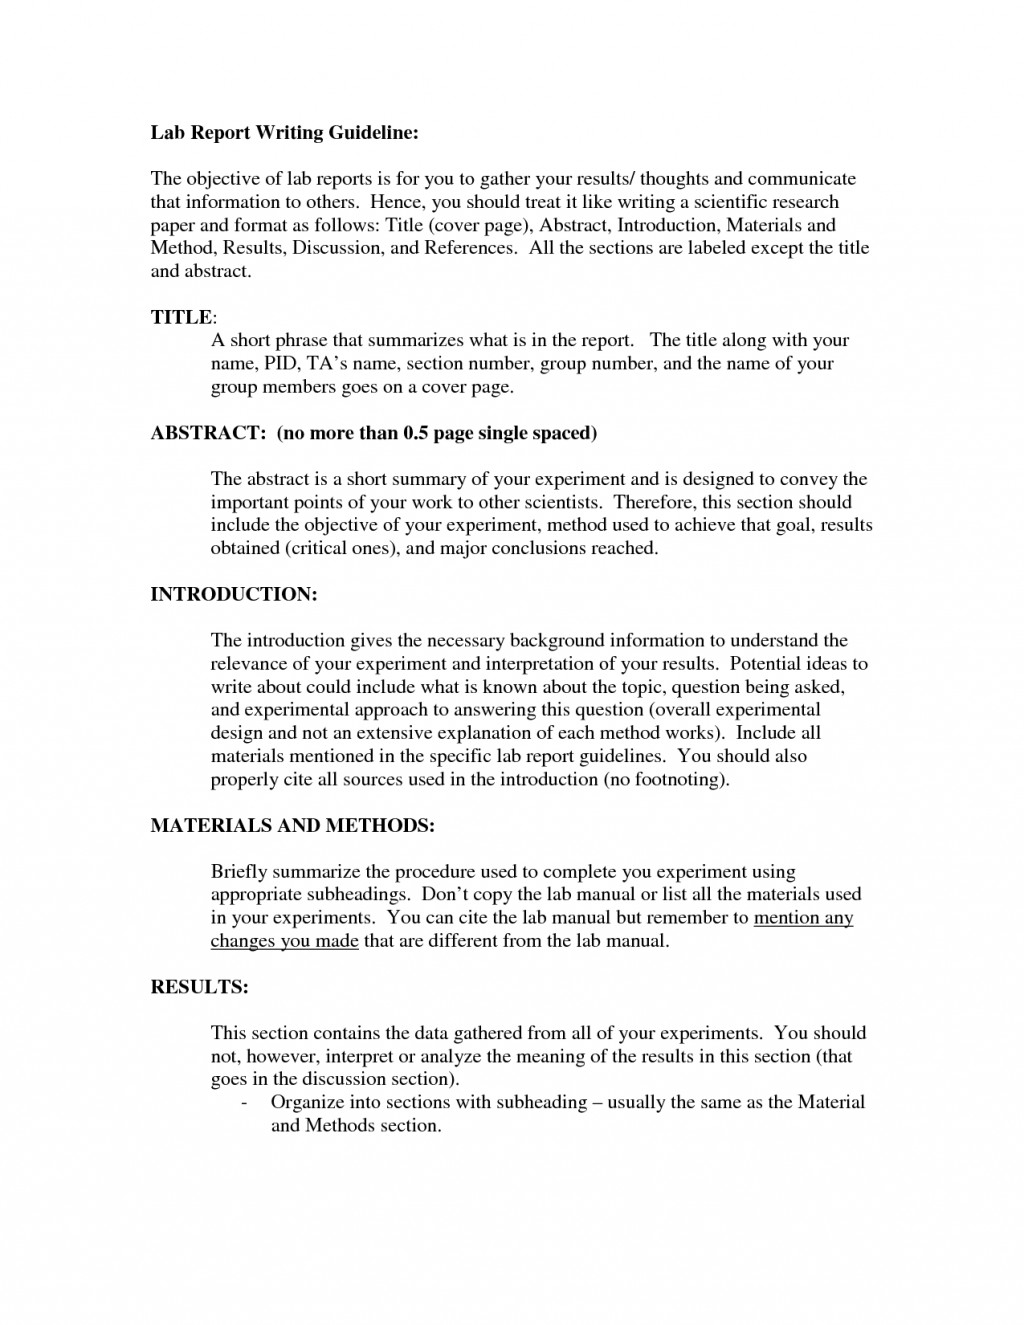 005 Dft1eehnlq Research Paper Example Methods Section Awesome Of Qualitative Sample Large